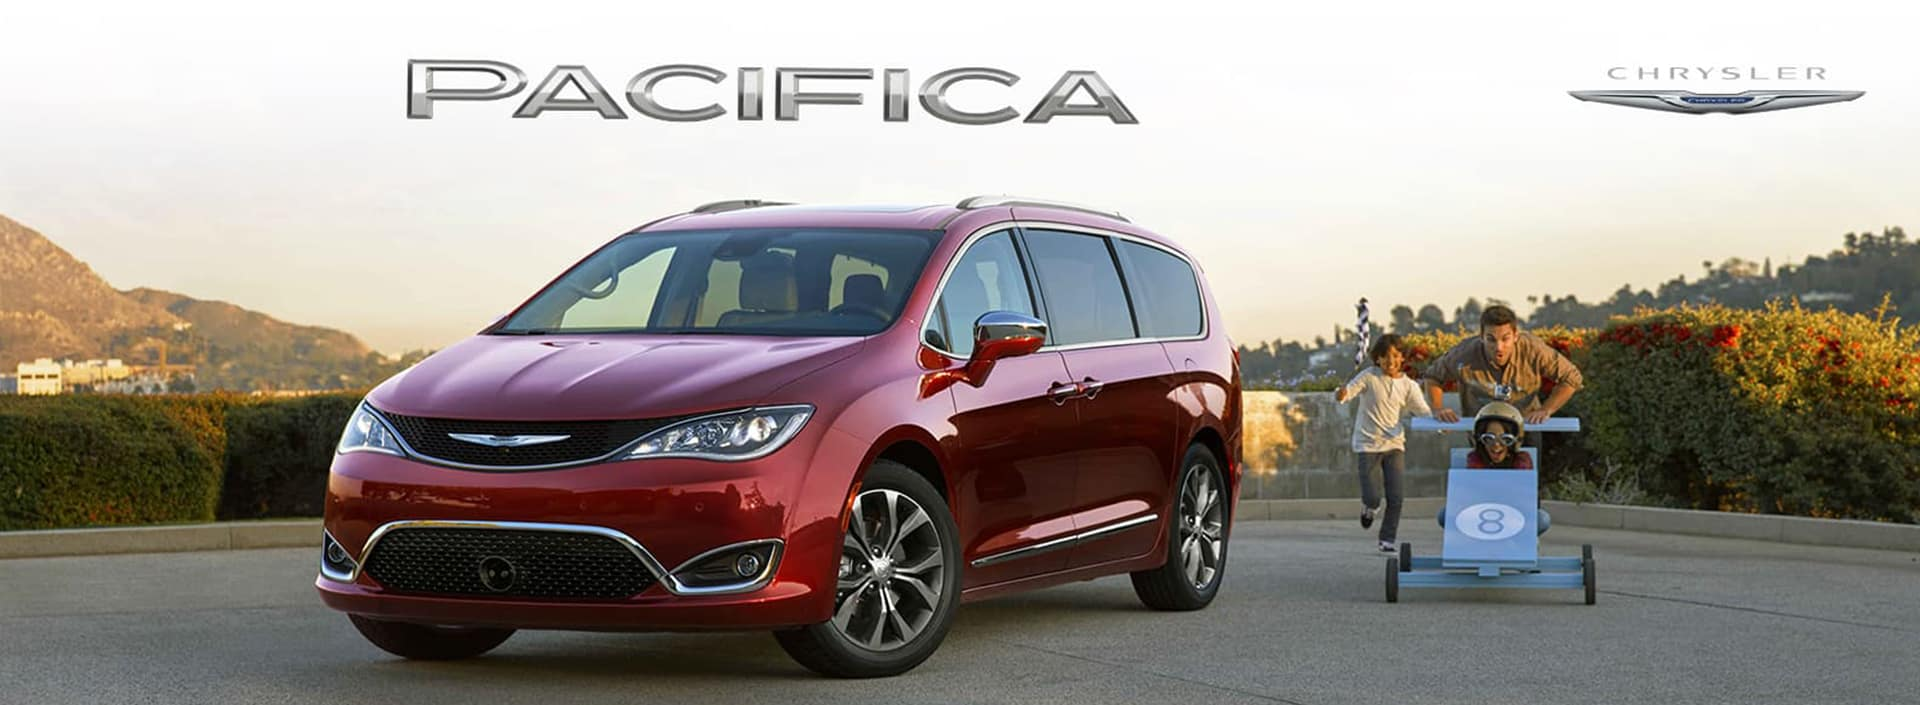 Chrysler Pacifica Banner